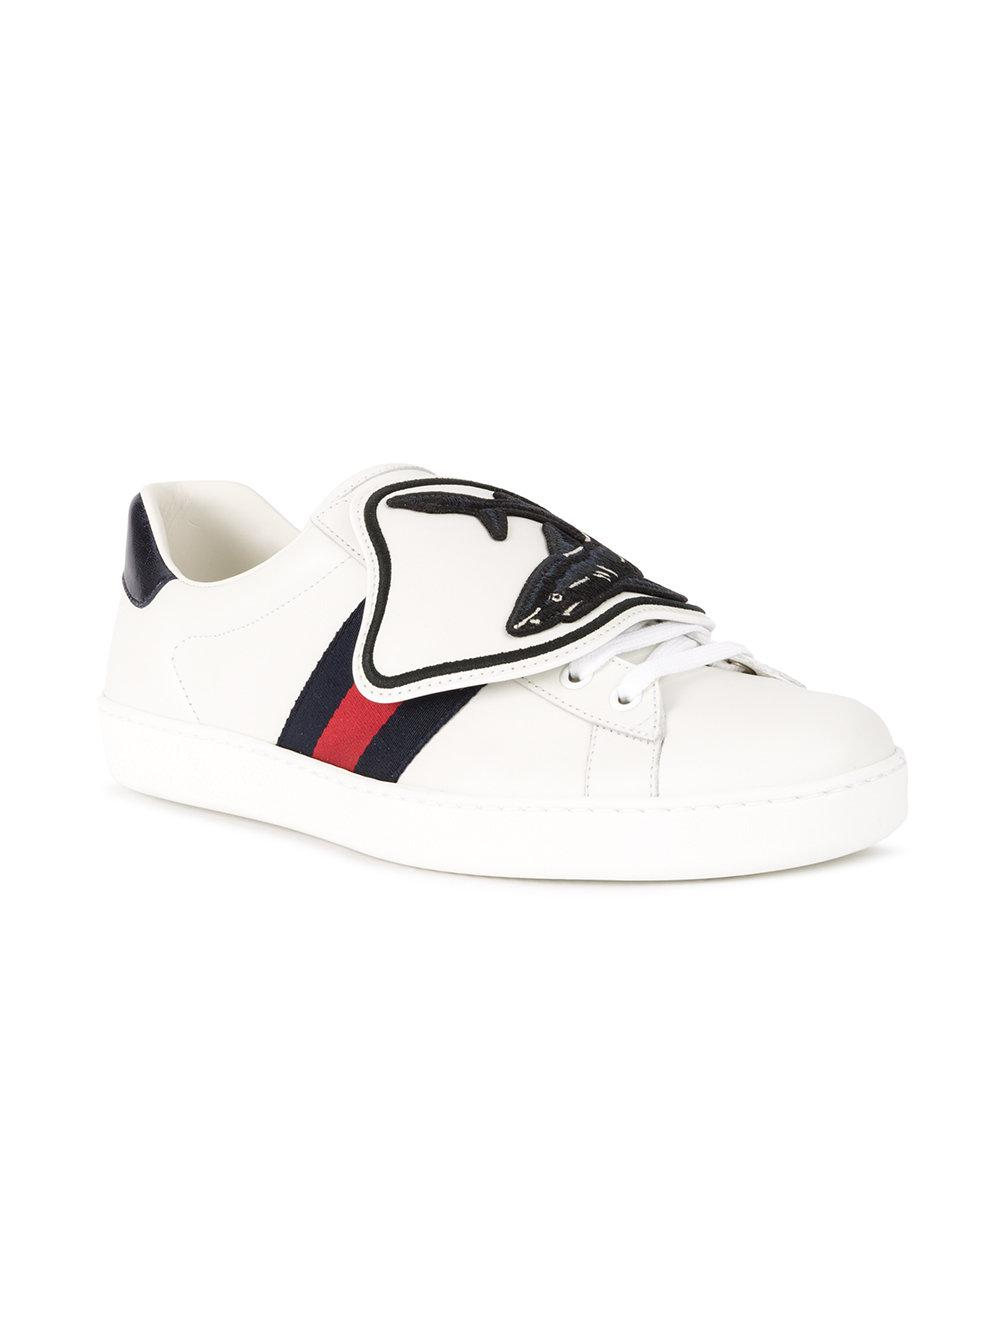 0018e5f5b99d Lyst - Gucci Ace Sneaker With Removable Patches in White for Men